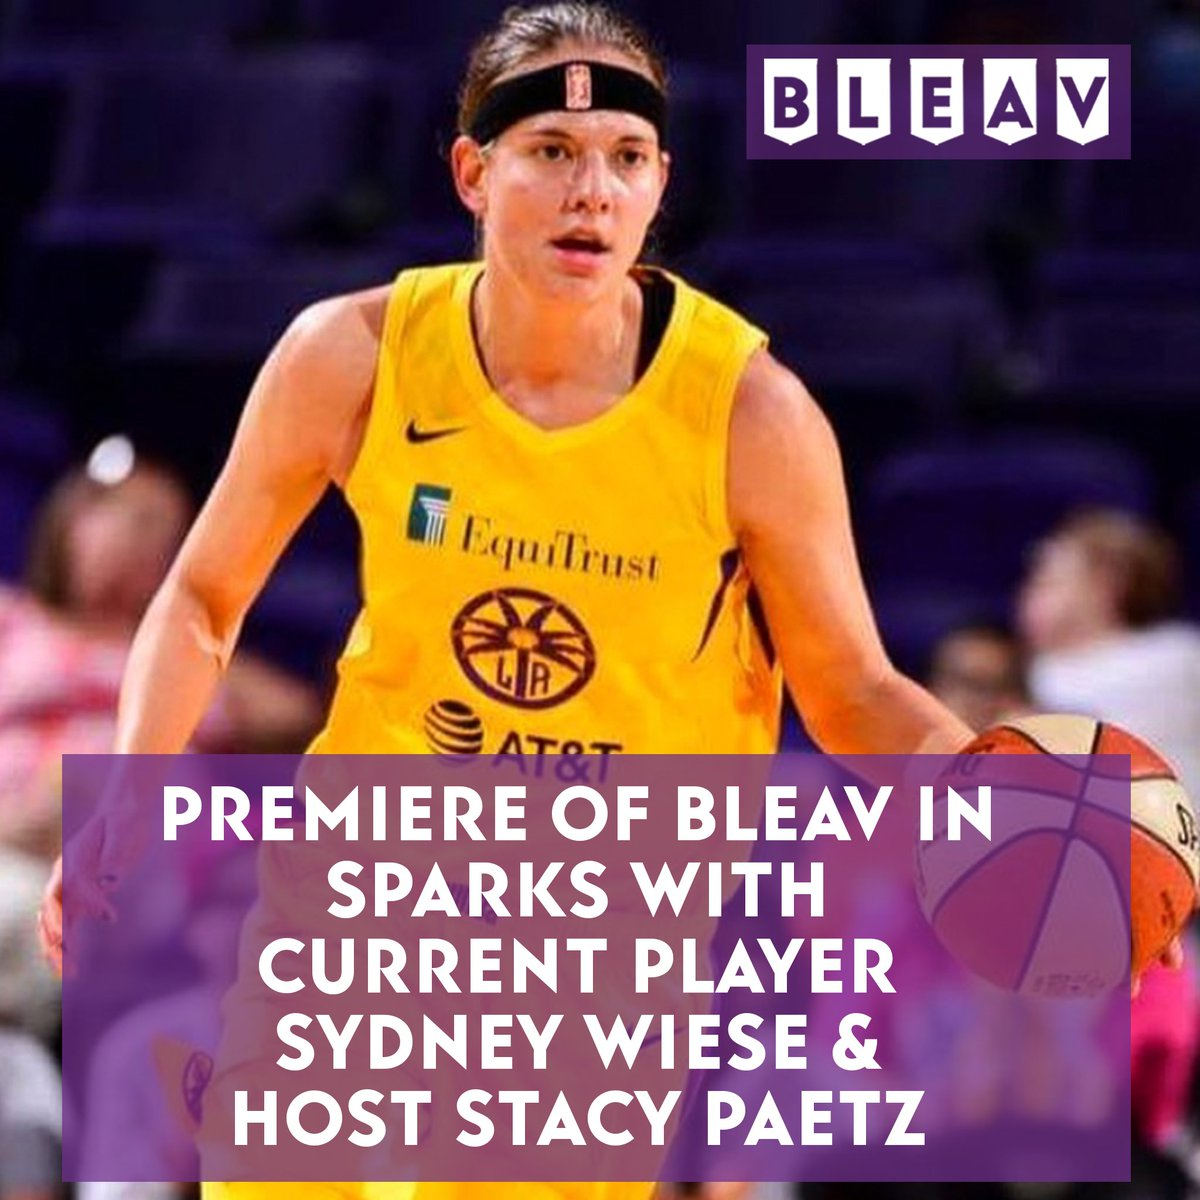 🏀 Premiere of Bleav in Sparks 🏀  And what a combo of hosts.  Current @LA_Sparks player @swiesebaby24 & national host @StacyPaetz bring you a podcast completely dedicated to the LA Sparks.  Get to know Sydney & Stacy on episode 1 right here 🙌: https://t.co/dfKMuGgQ2E https://t.co/TNH8mqes6S